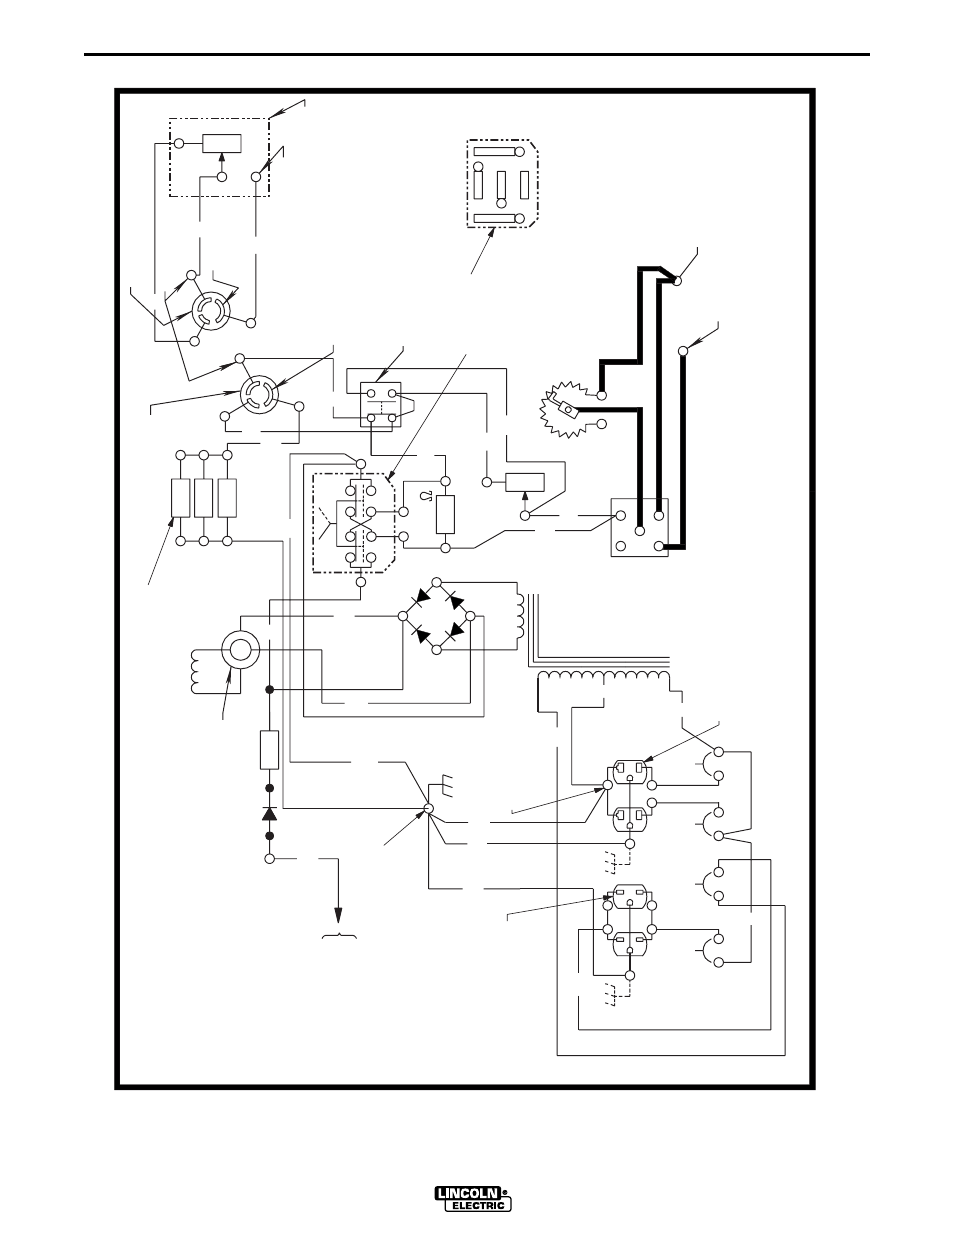 Wiring diagrams, Sae400 weld'n air, Control wiring diagram - sae-400 weld'n  air | Lincoln Electric IM581 SAE400 User Manual | Page 28 / 34